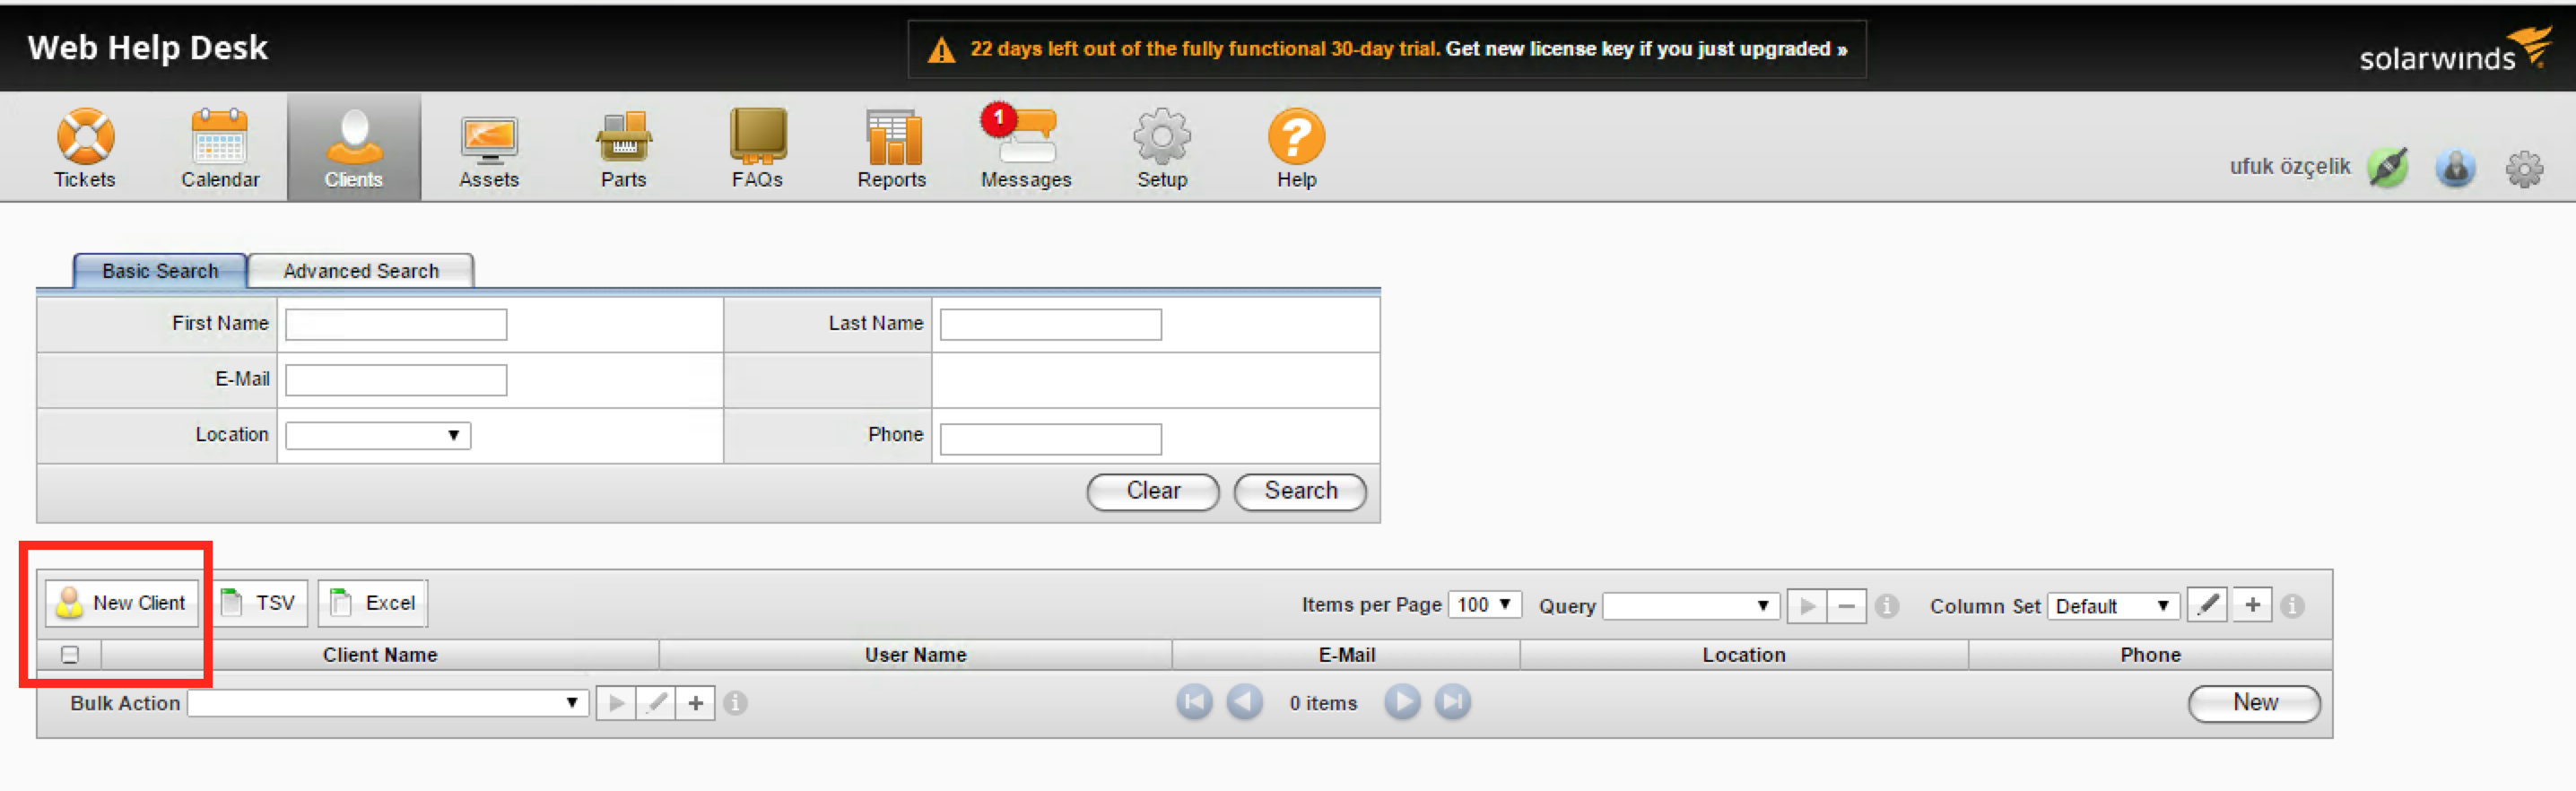 Click On New Client Button In SolarWinds Web Help Desk.